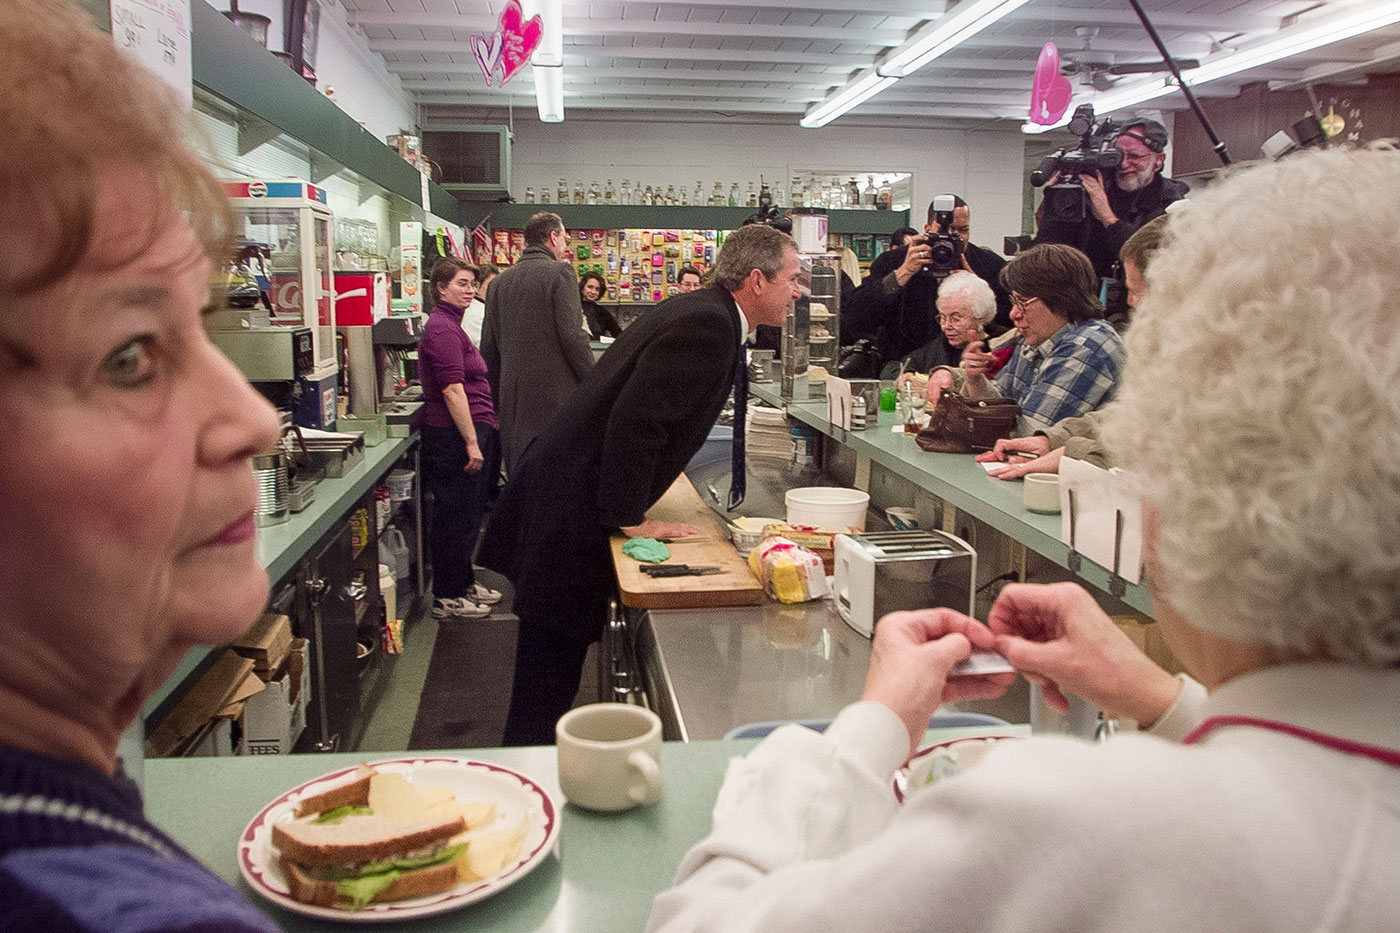 """Stephen Crowley, """"A Diner in Iowa"""" (2000) (© Stephen Crowley / The New York Times)"""